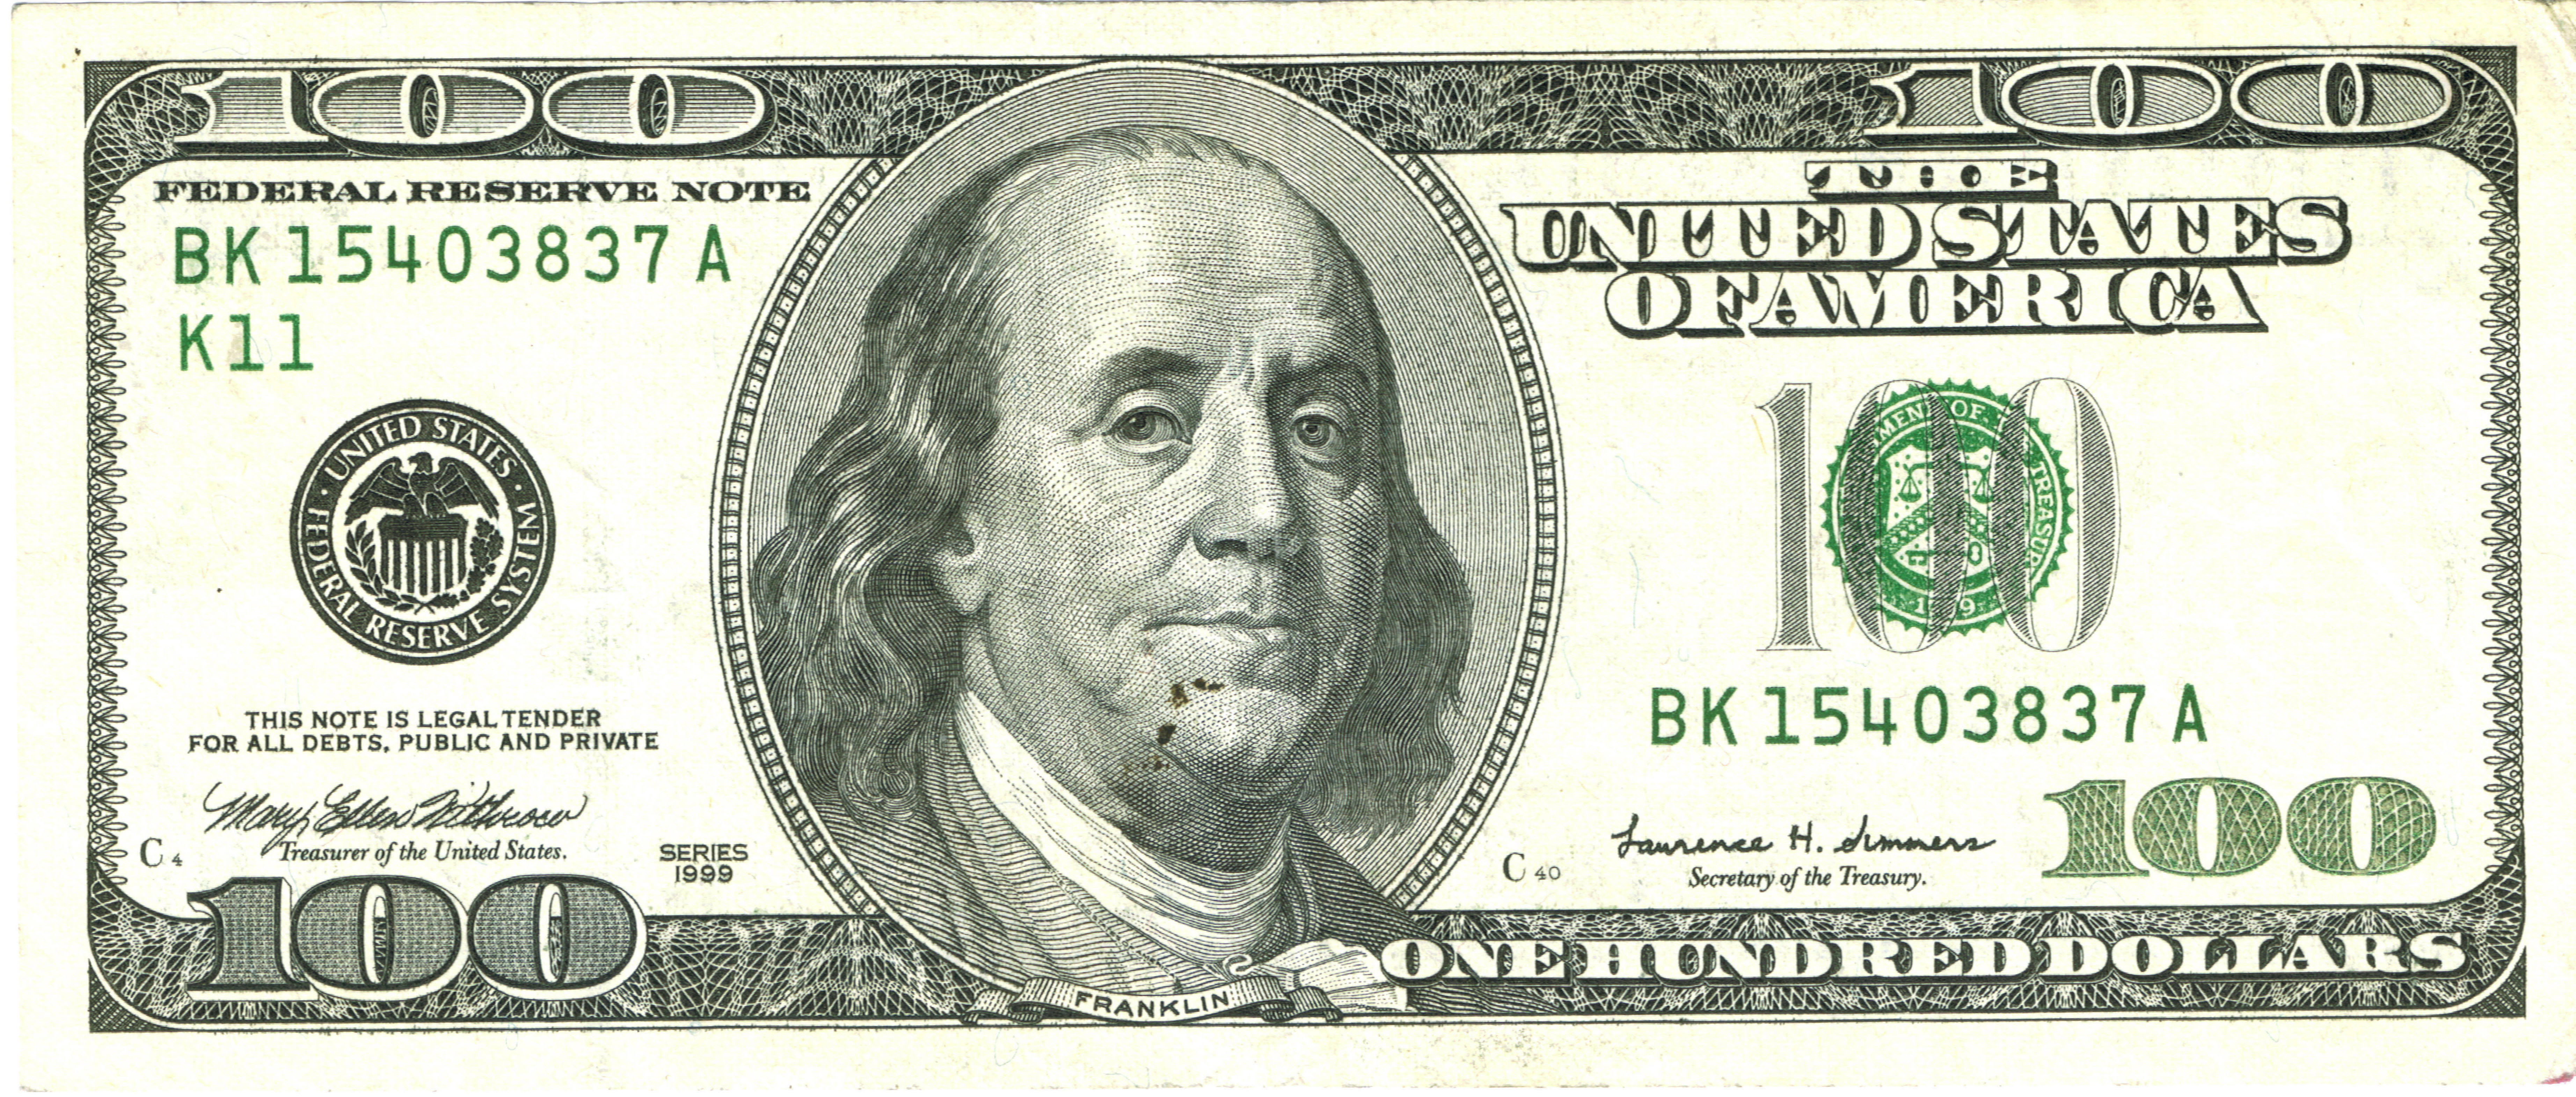 Fileu S Hundred Dollar Bill 1999 Jpg